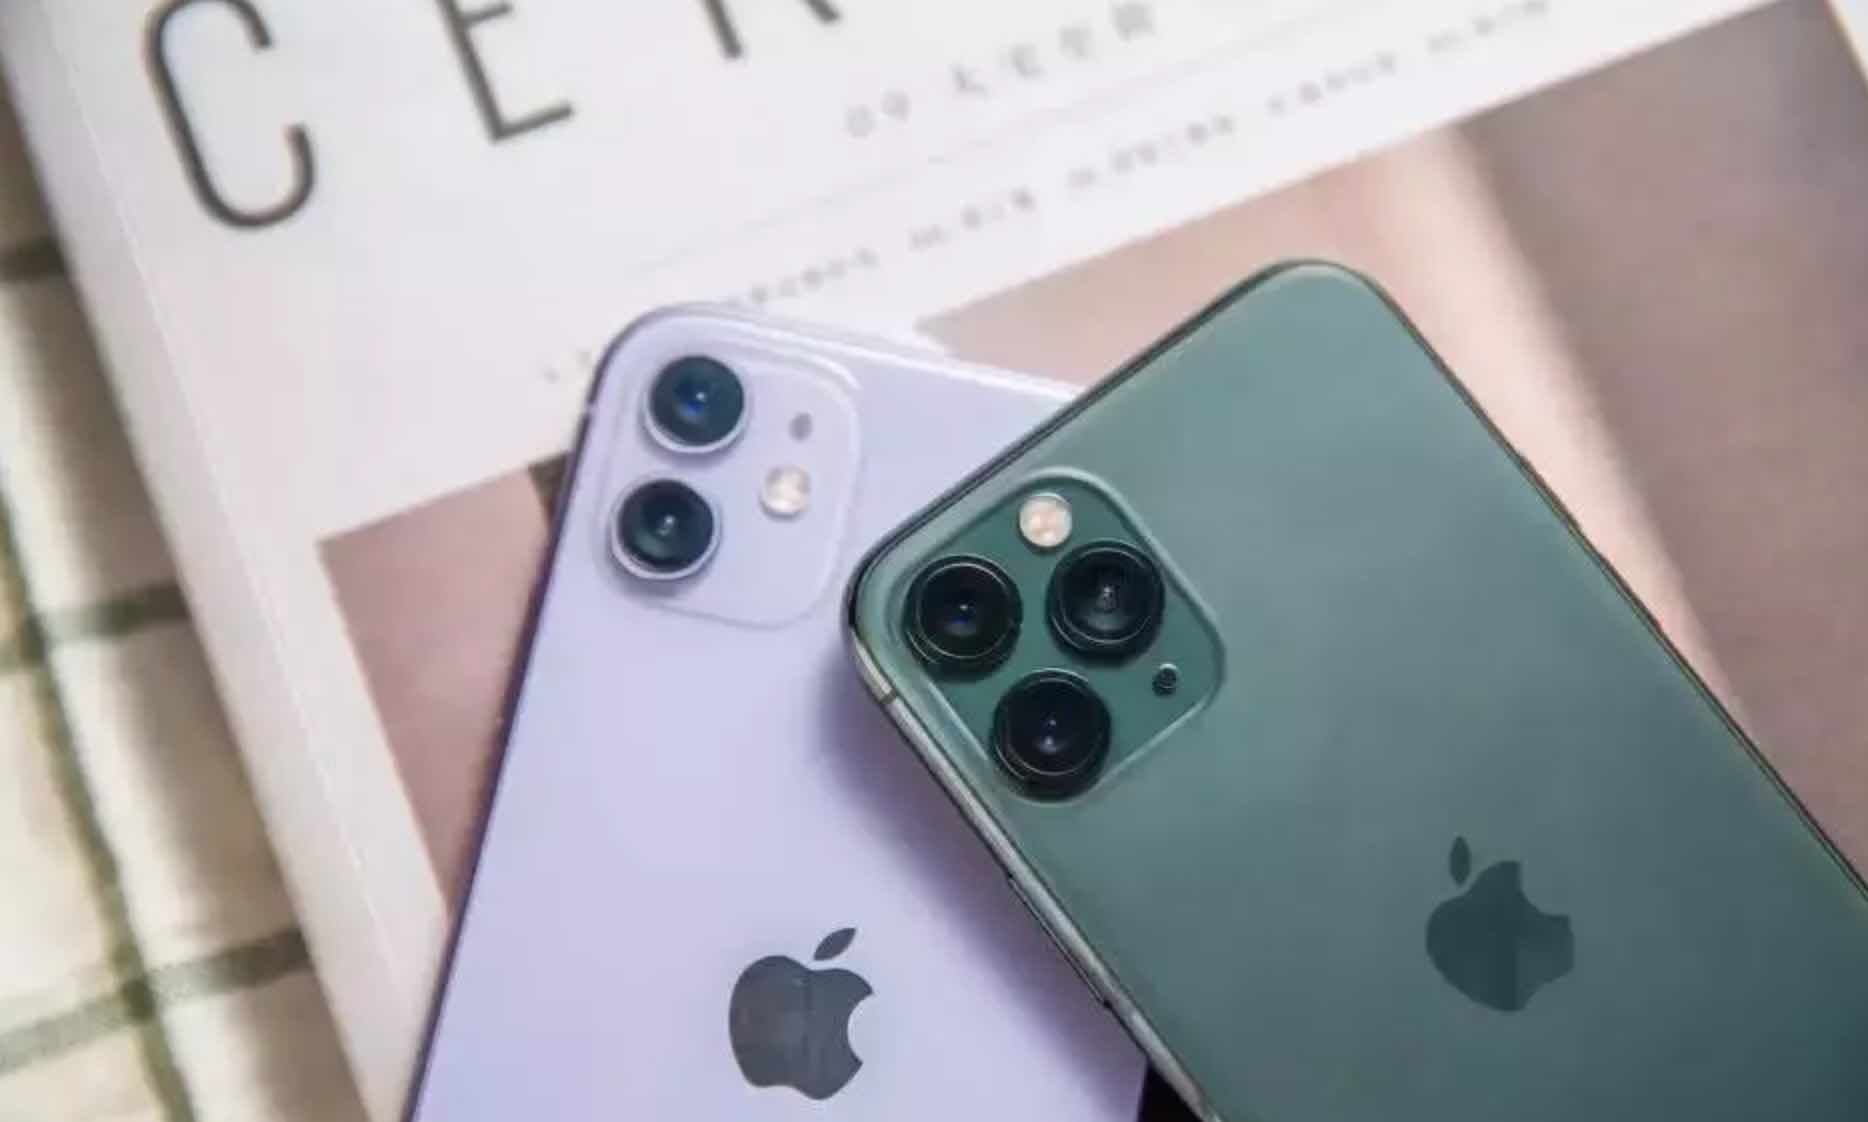 3 Reasons Why  Mobile Phone Brands are Focusing on Cameras  as Their Main Selling Point Nowadays